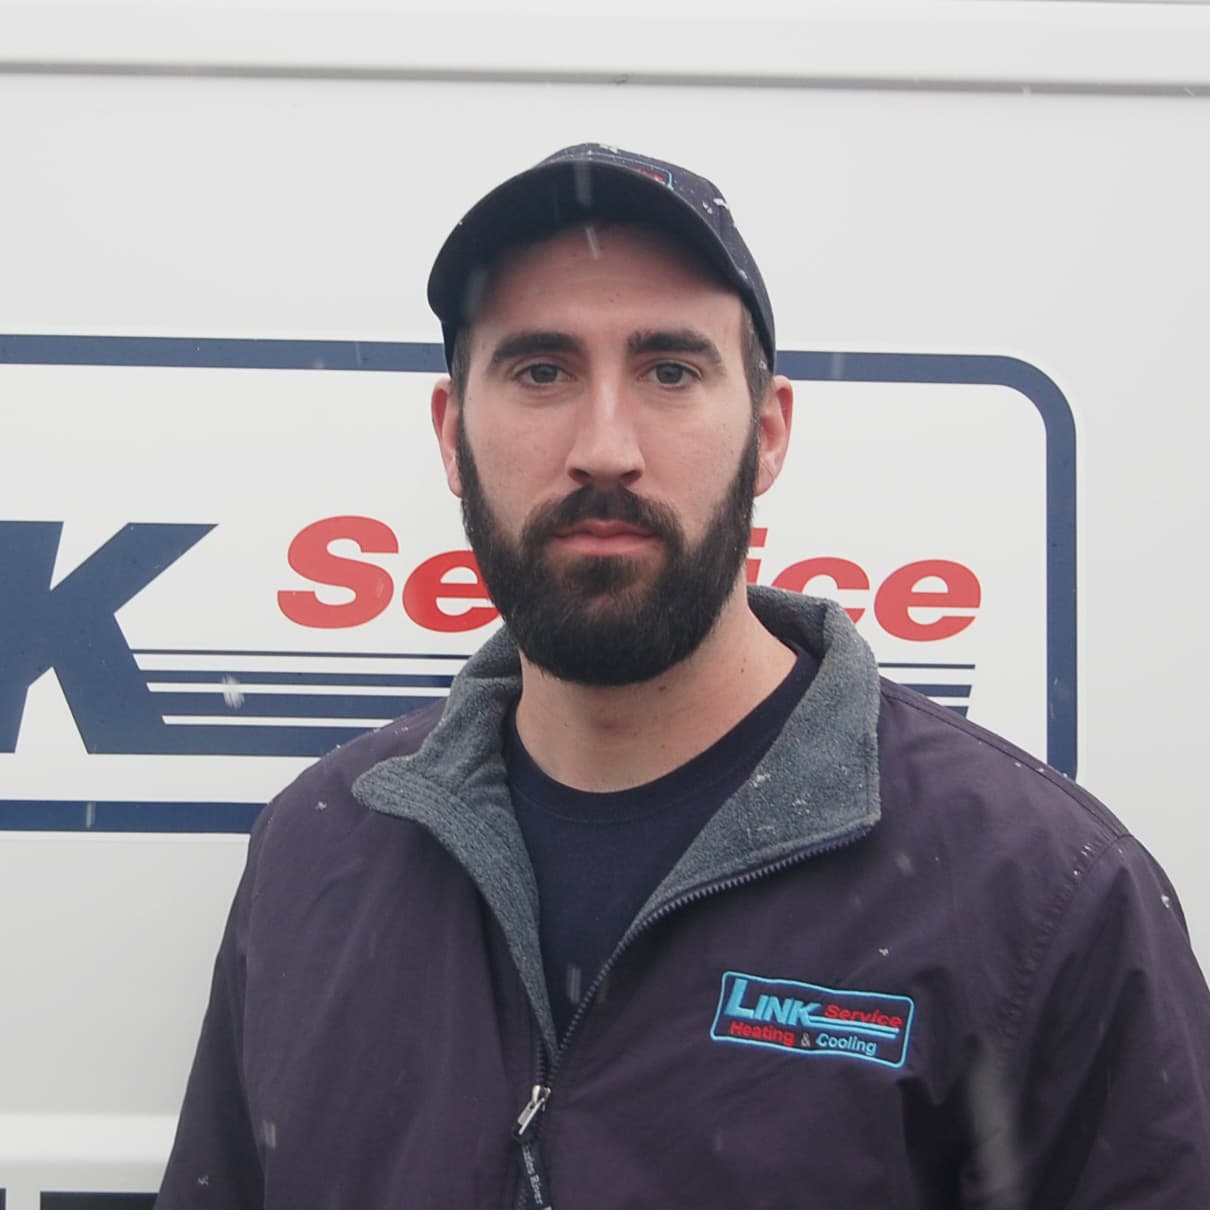 Tom B of Link Service Heating & Cooling.